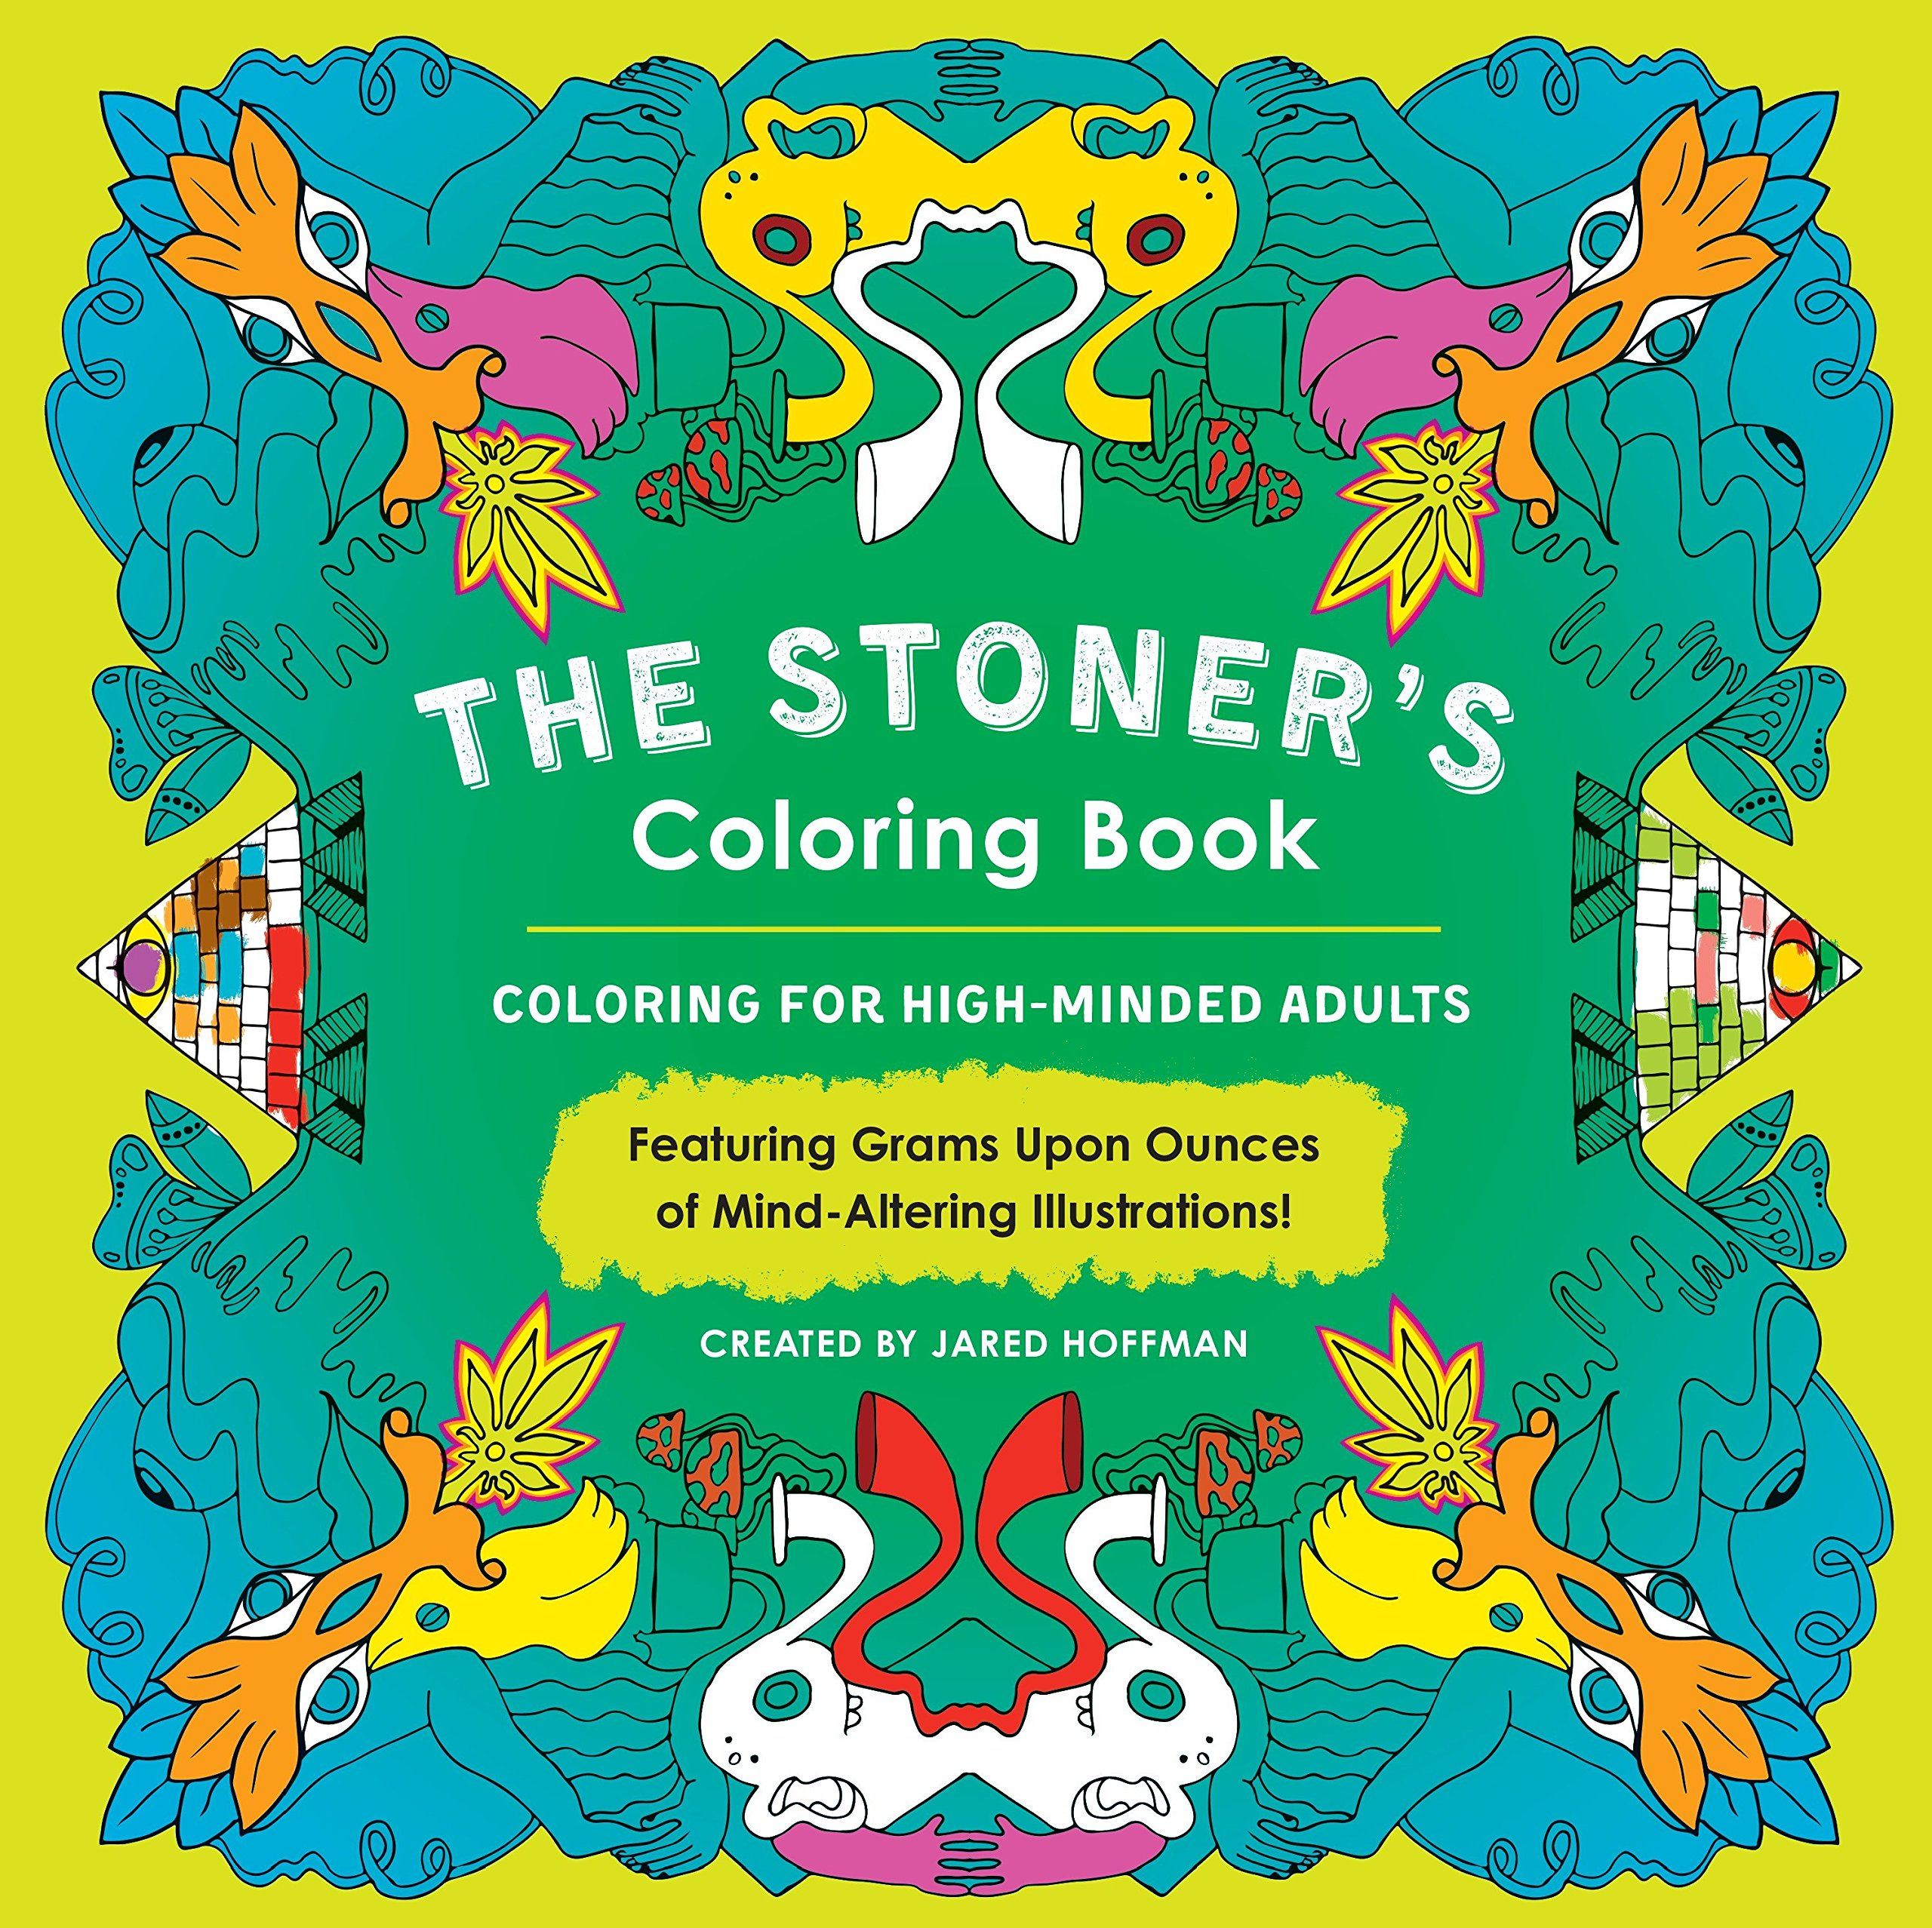 The Stoner's Coloring Book: Coloring for High-Minded Adults